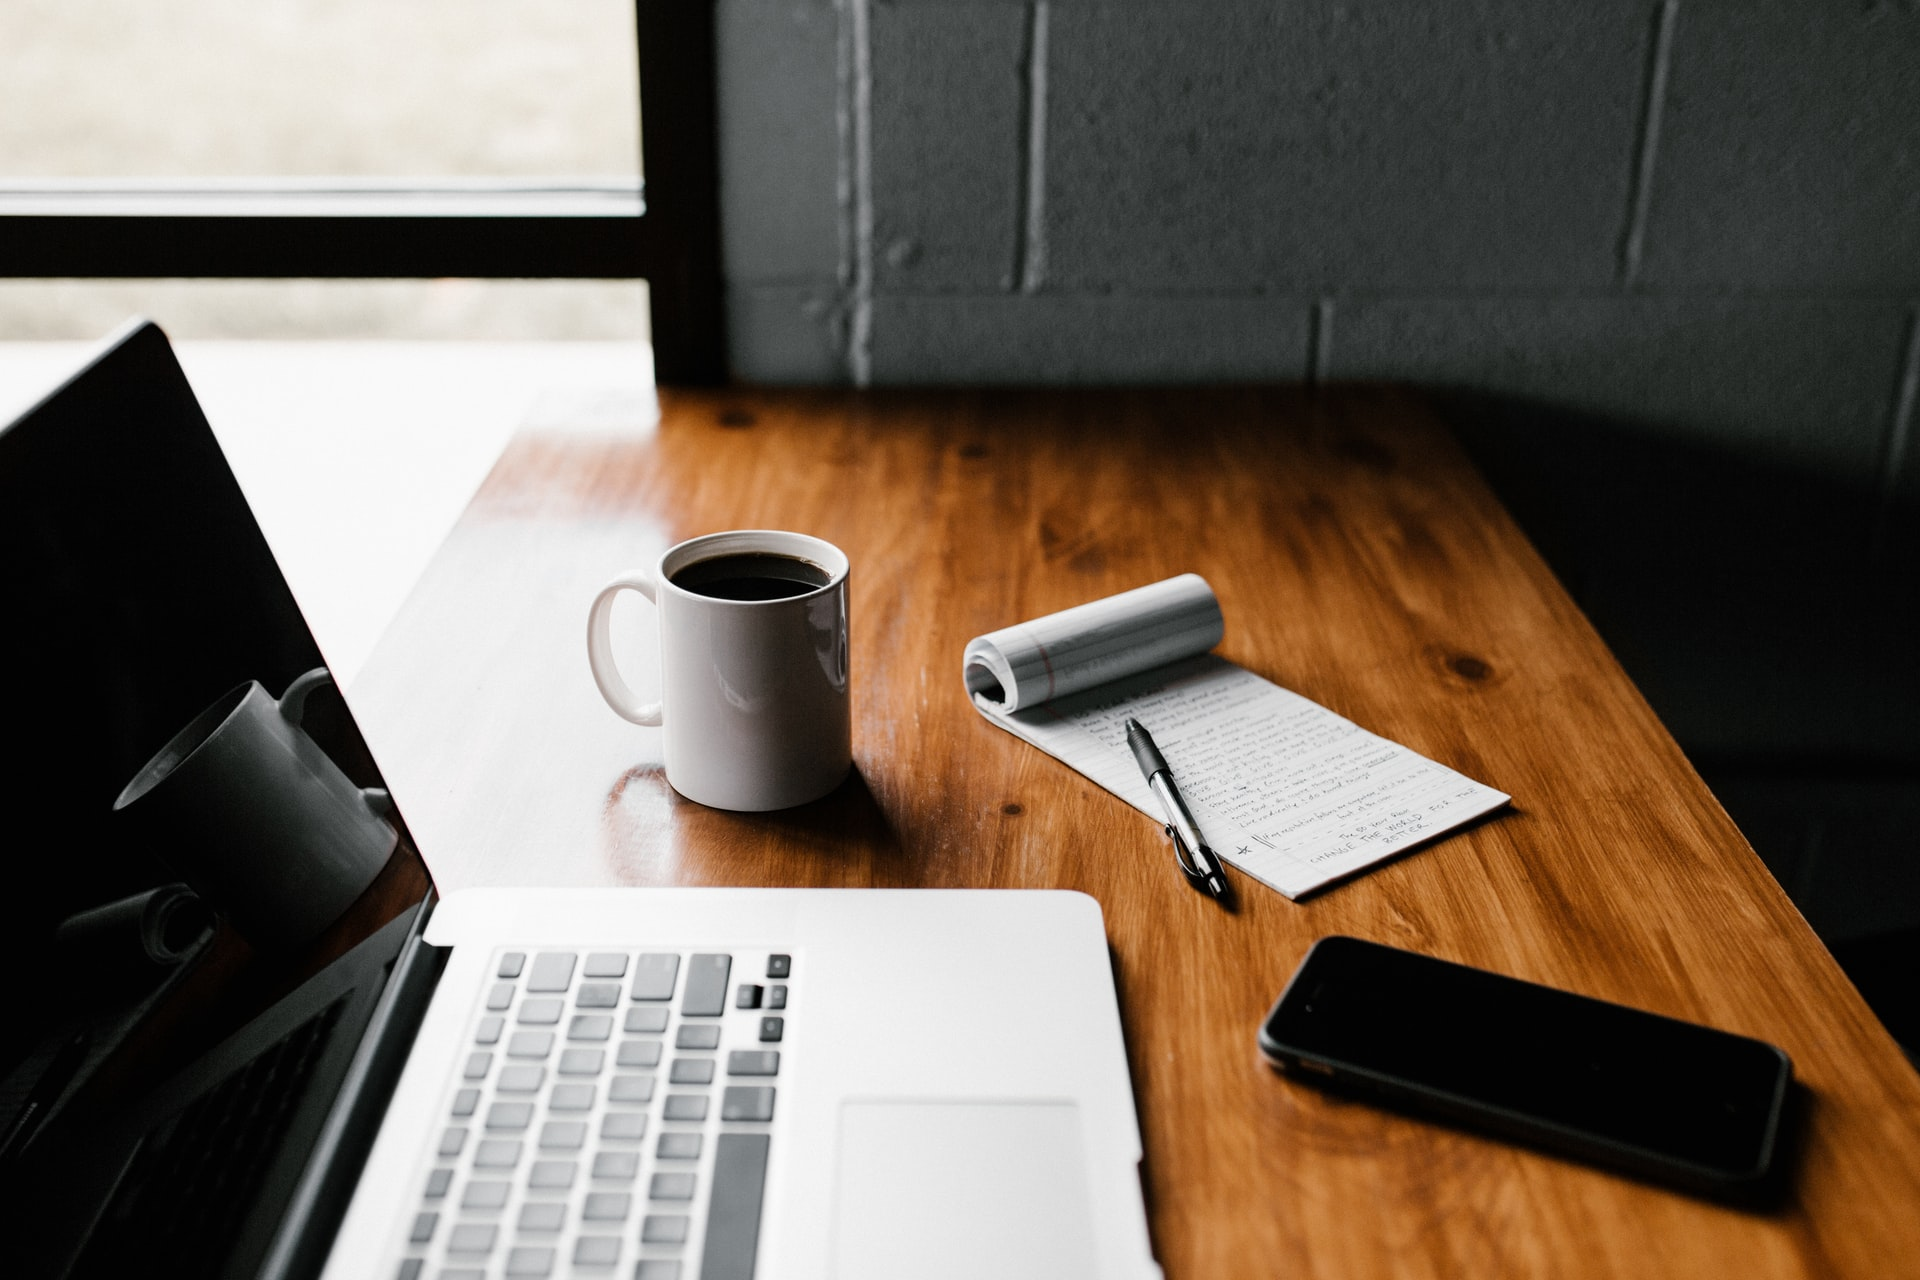 This image shows a wooden desk. On the top of the desk, there is a pen and paper, a mobile phone, laptop and a cup of coffee.